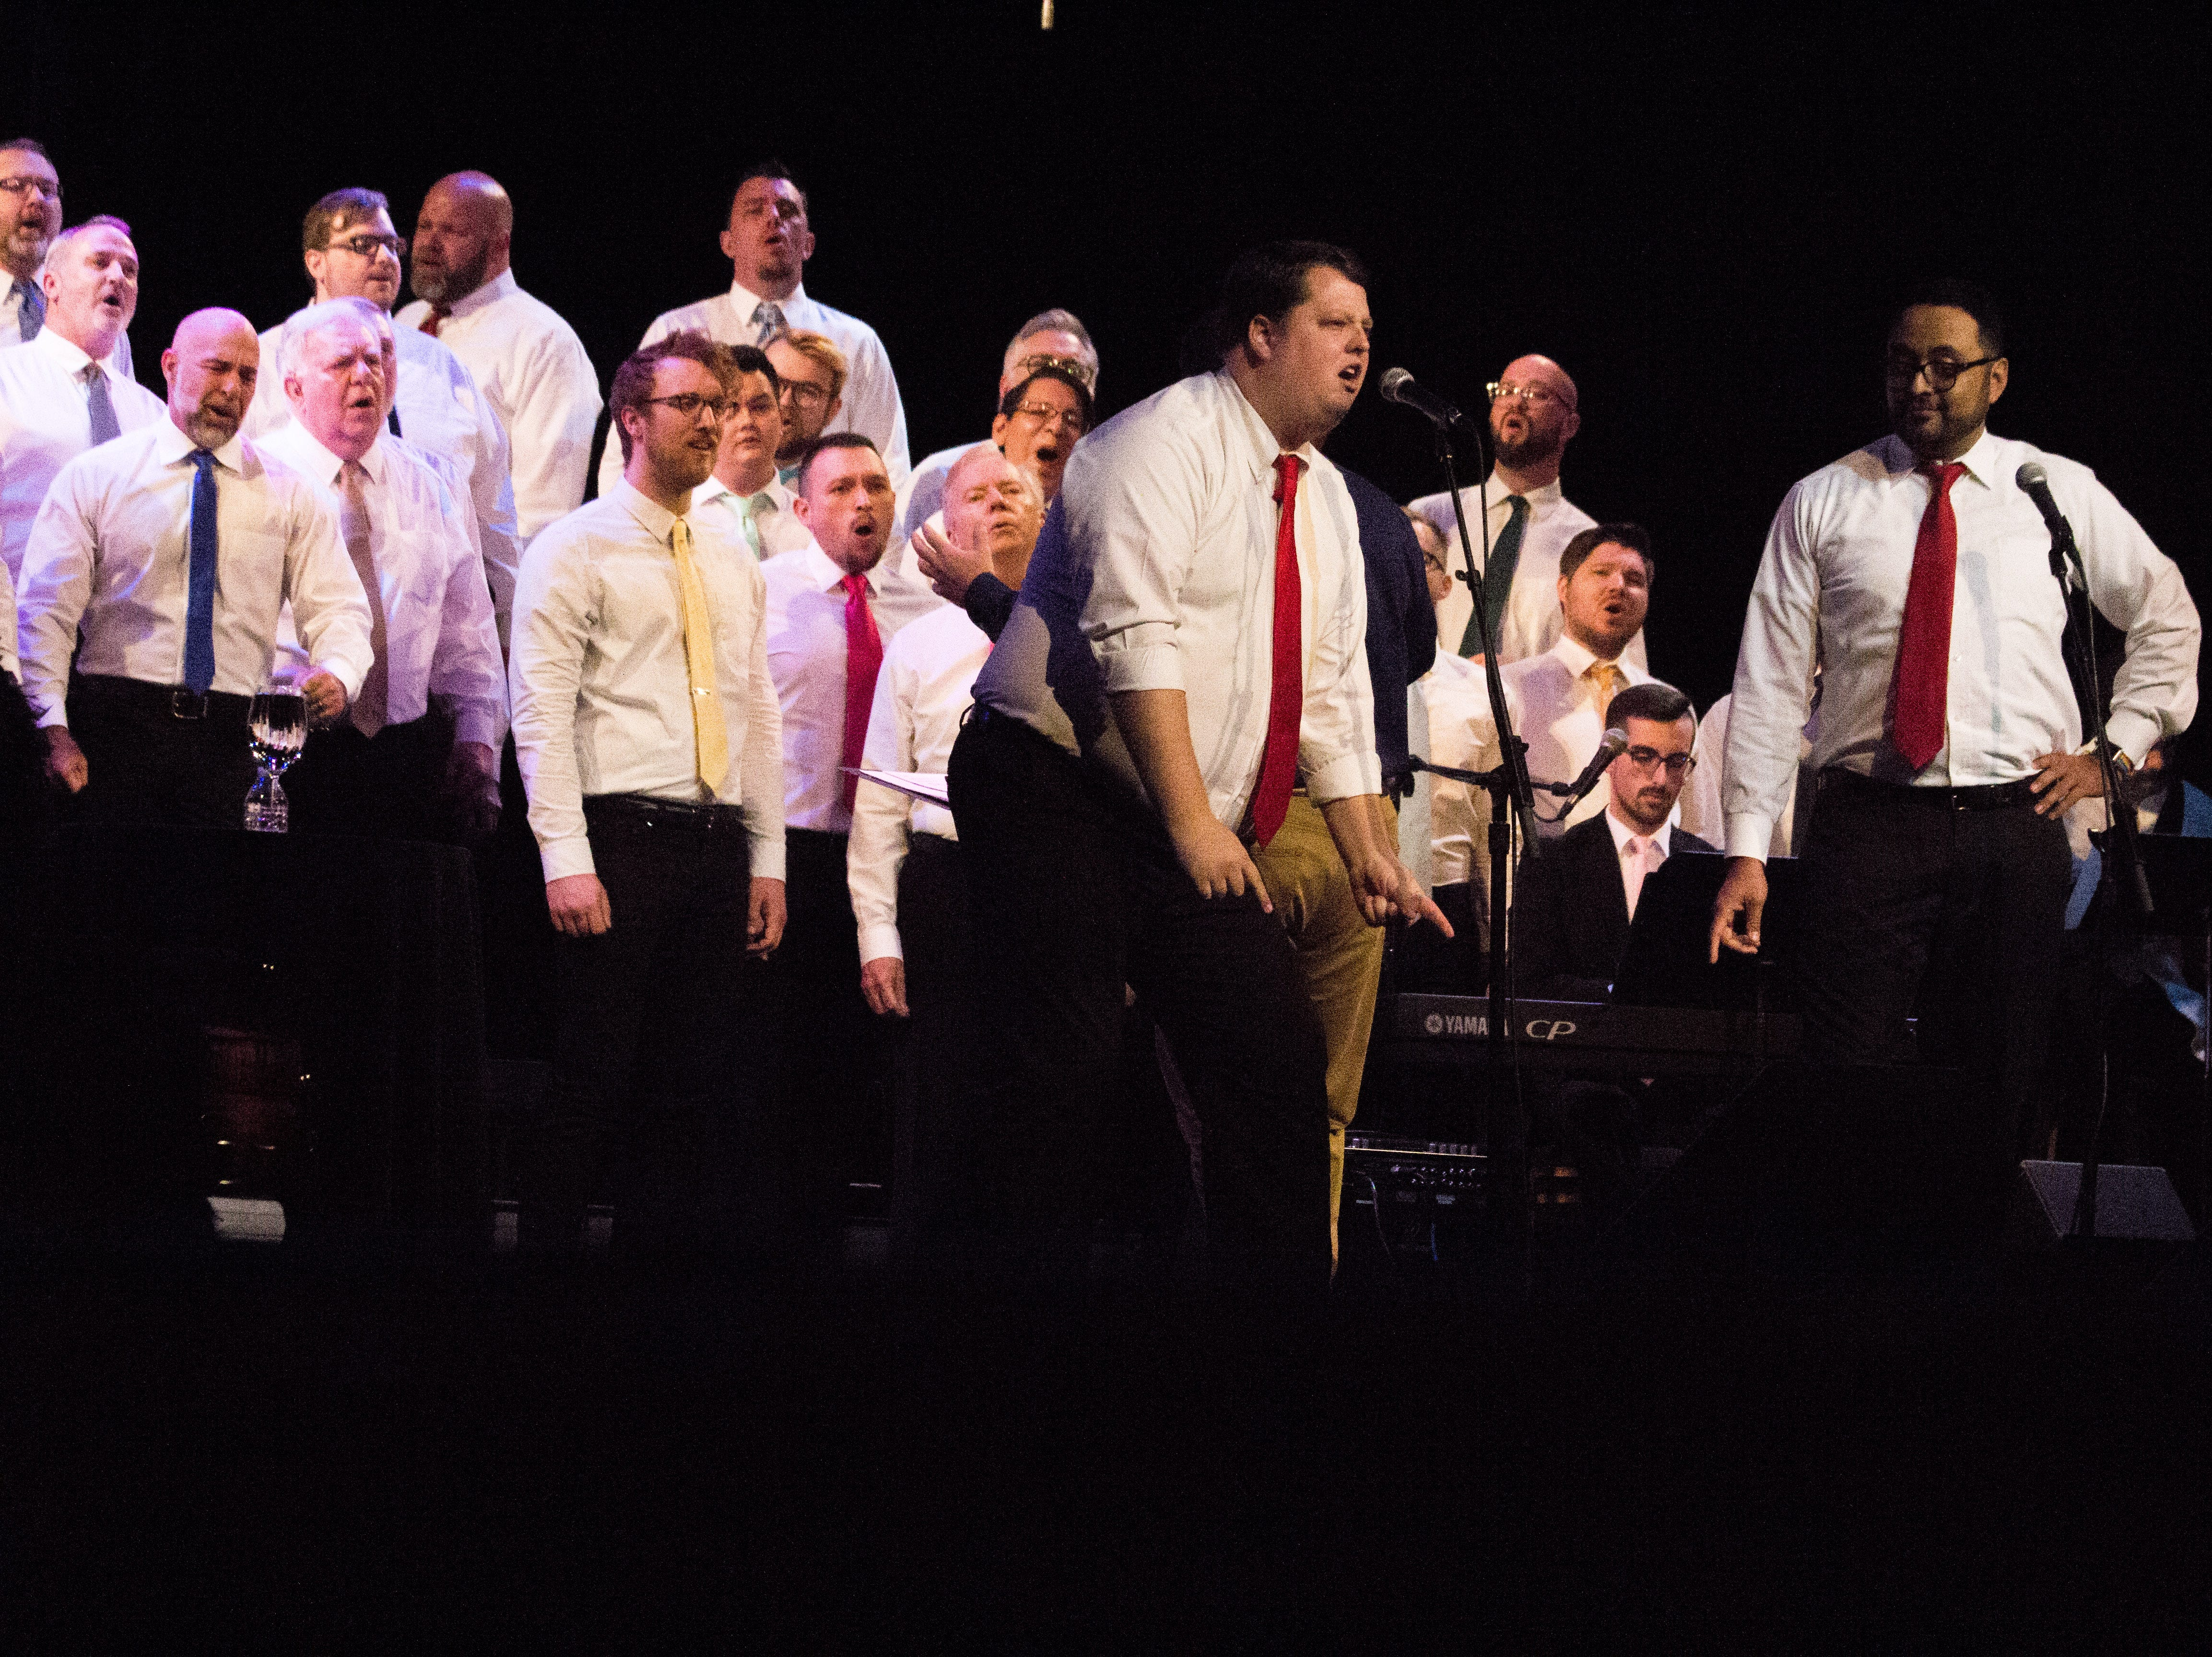 The Knoxville Gay Men's Chorus opens for Latrice Royale at the BIjou Theatre on Jan. 5, 2019.